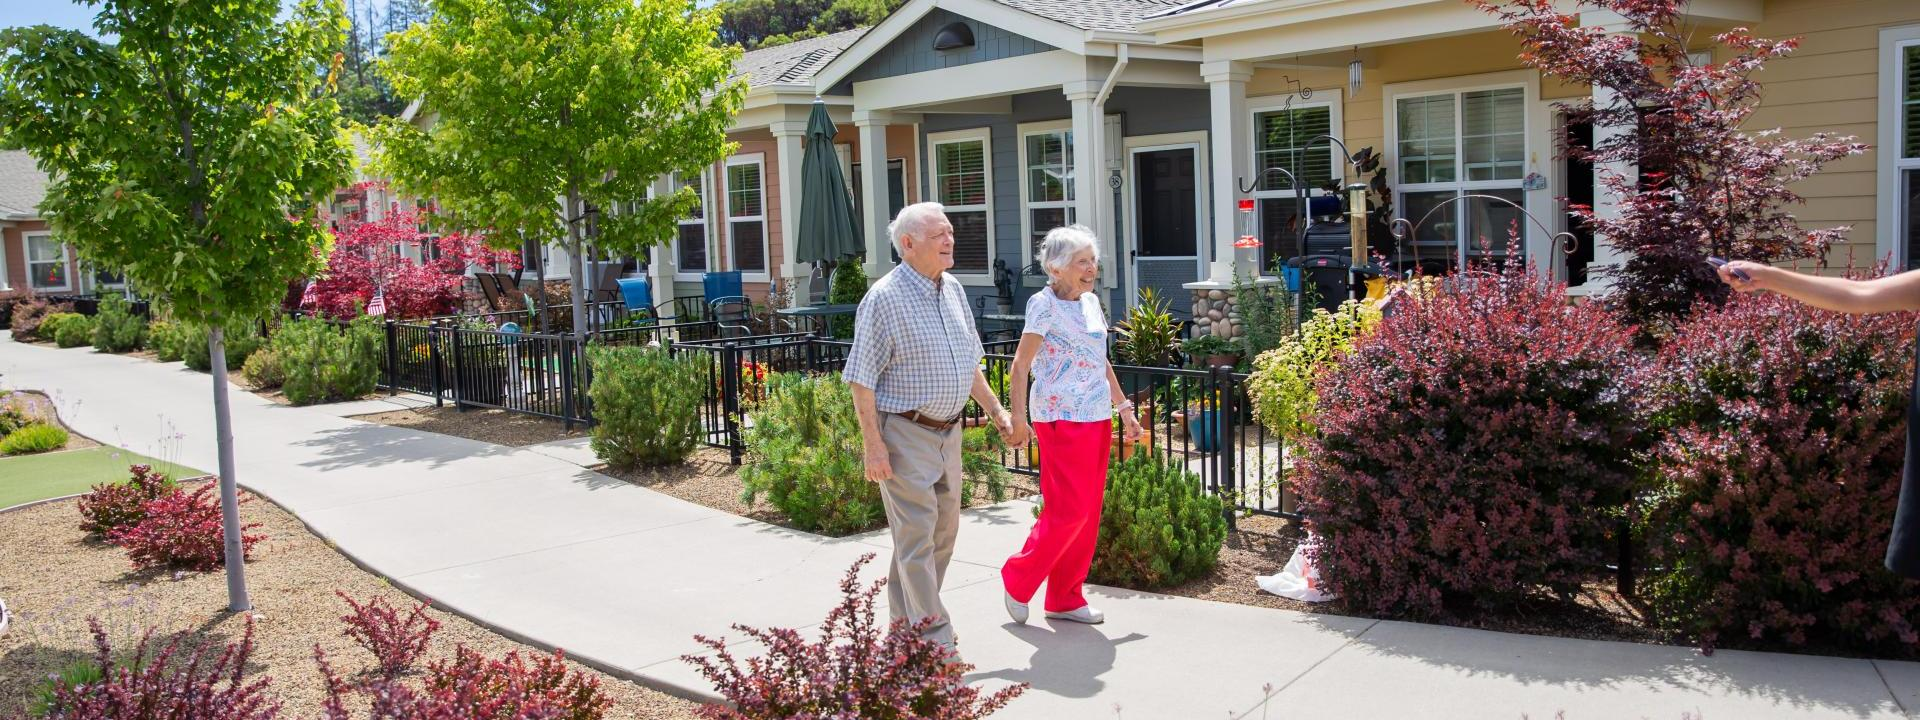 Resident couple walking holding hand and hand.